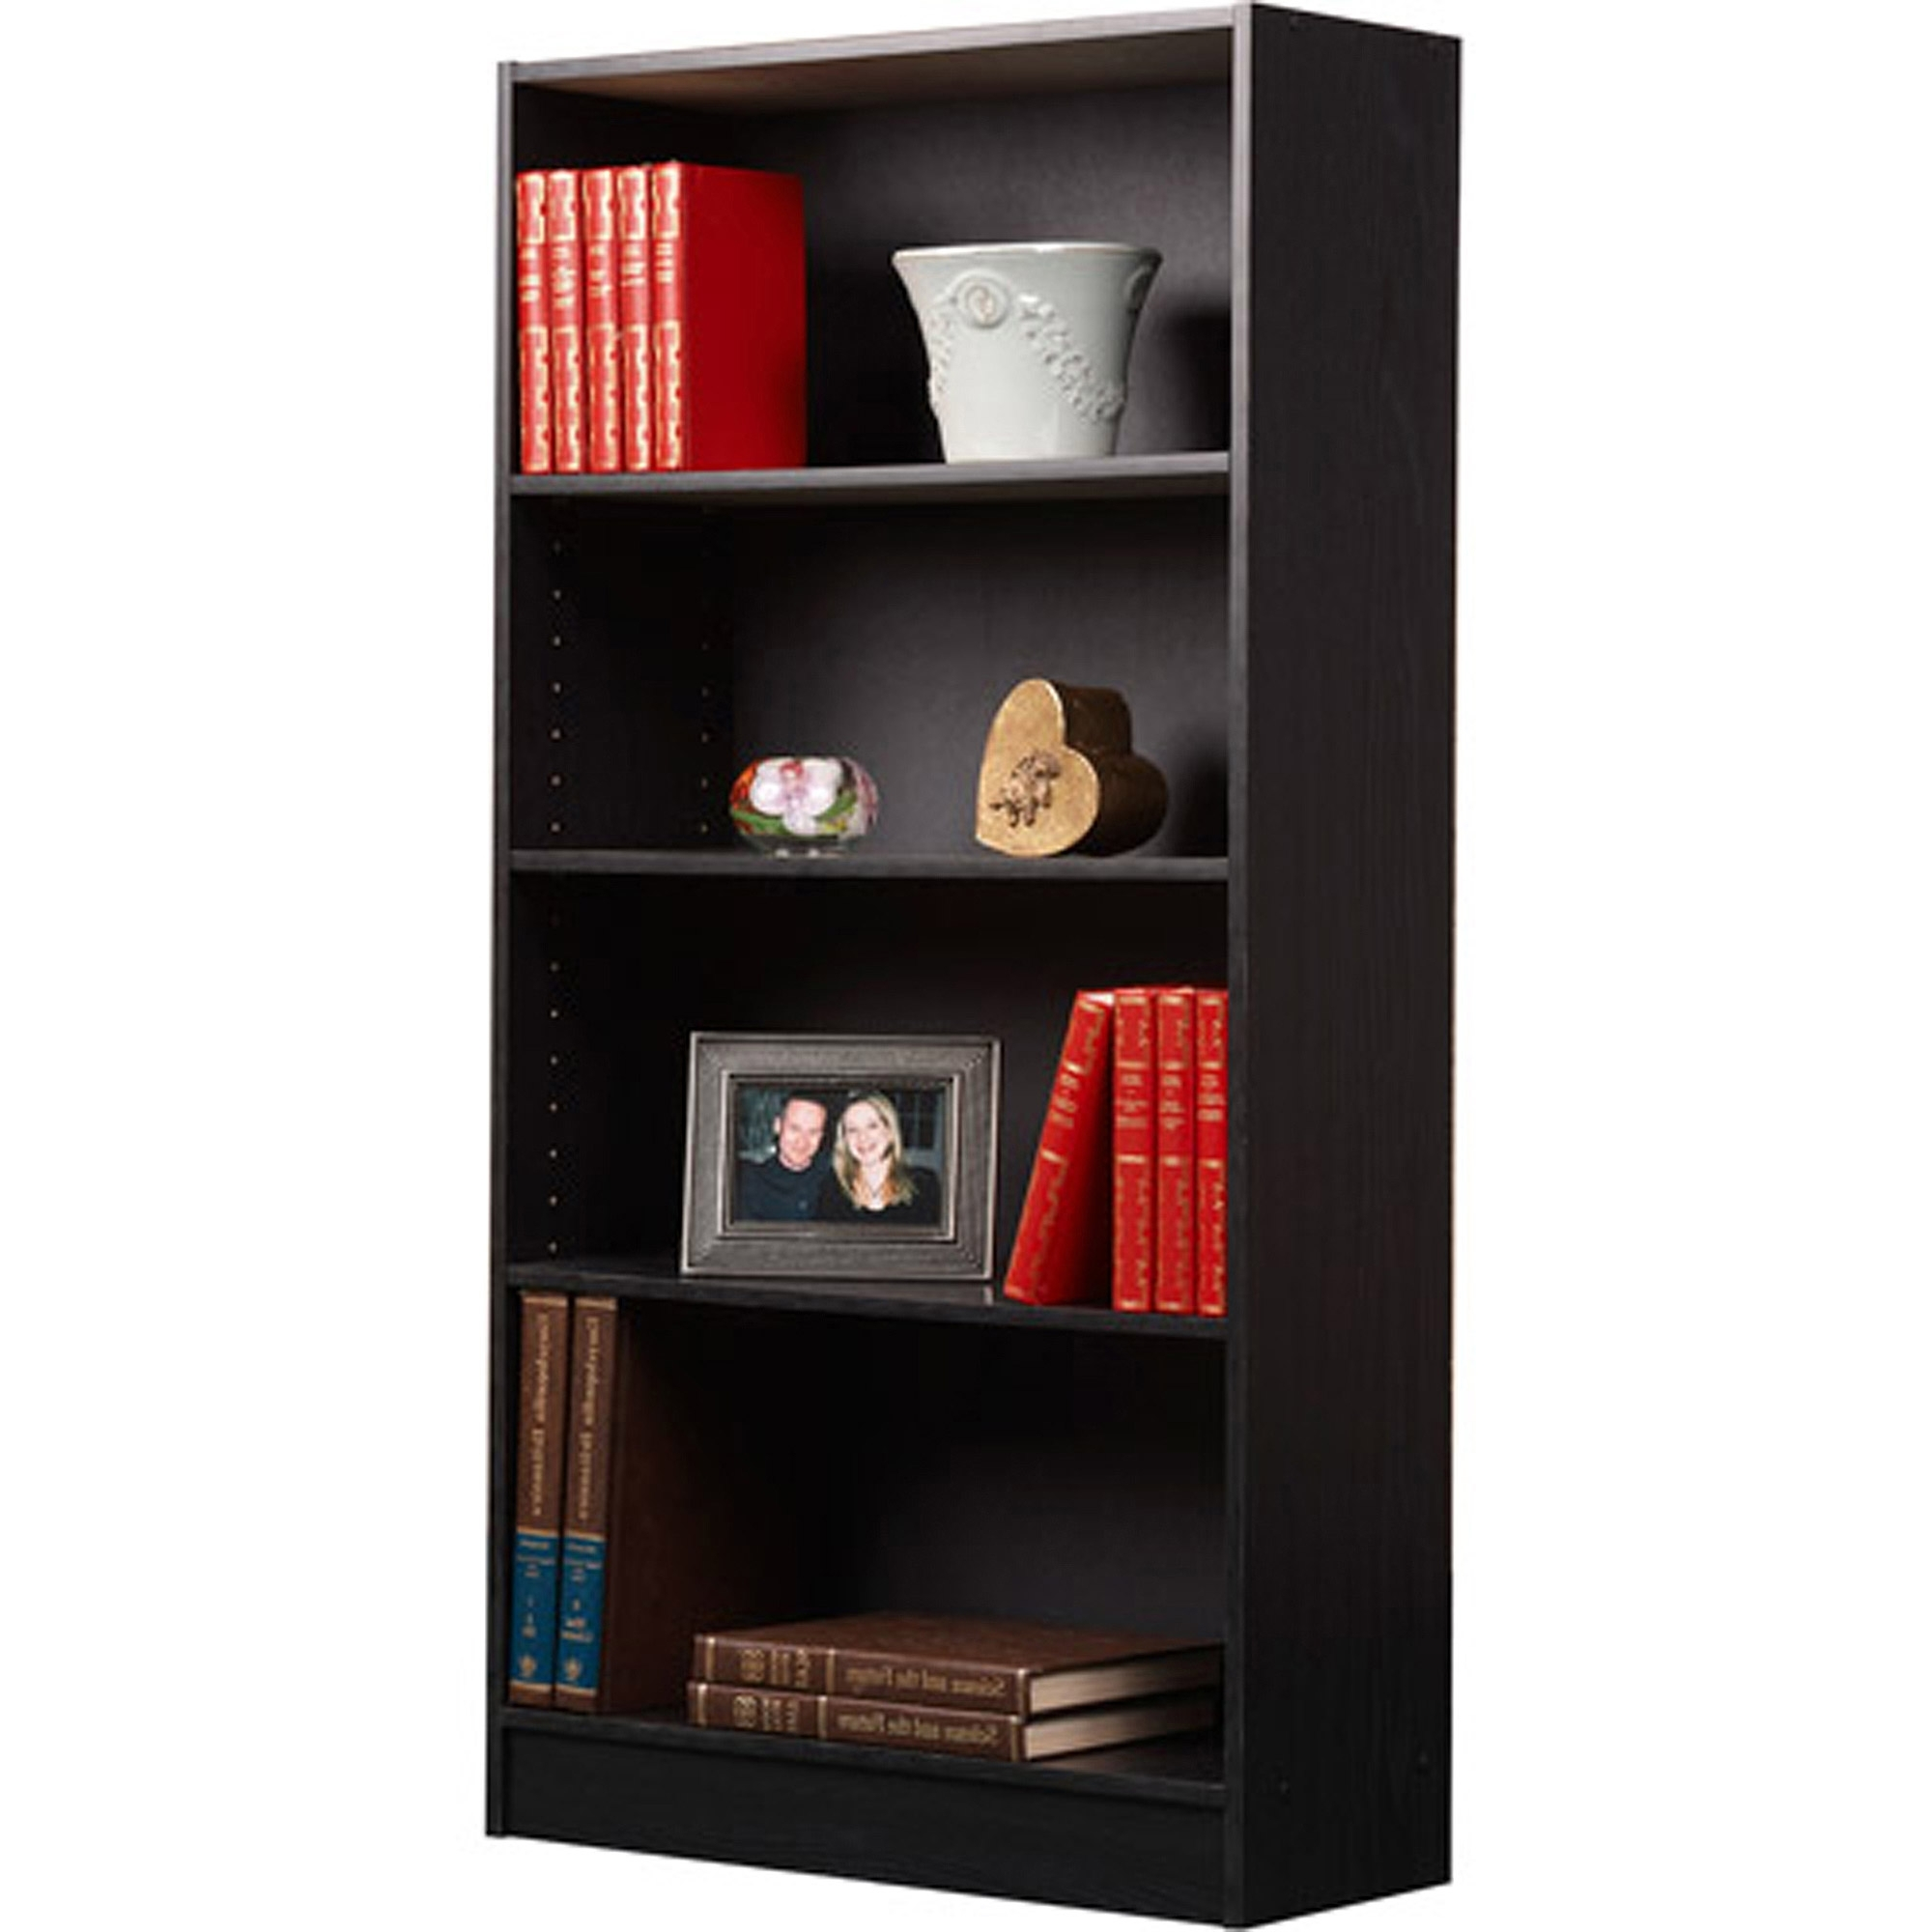 Orion 4 Shelf Bookcases, Set Of 2 – Walmart In Well Known 3 Shelf Bookcases Walmart (View 12 of 15)